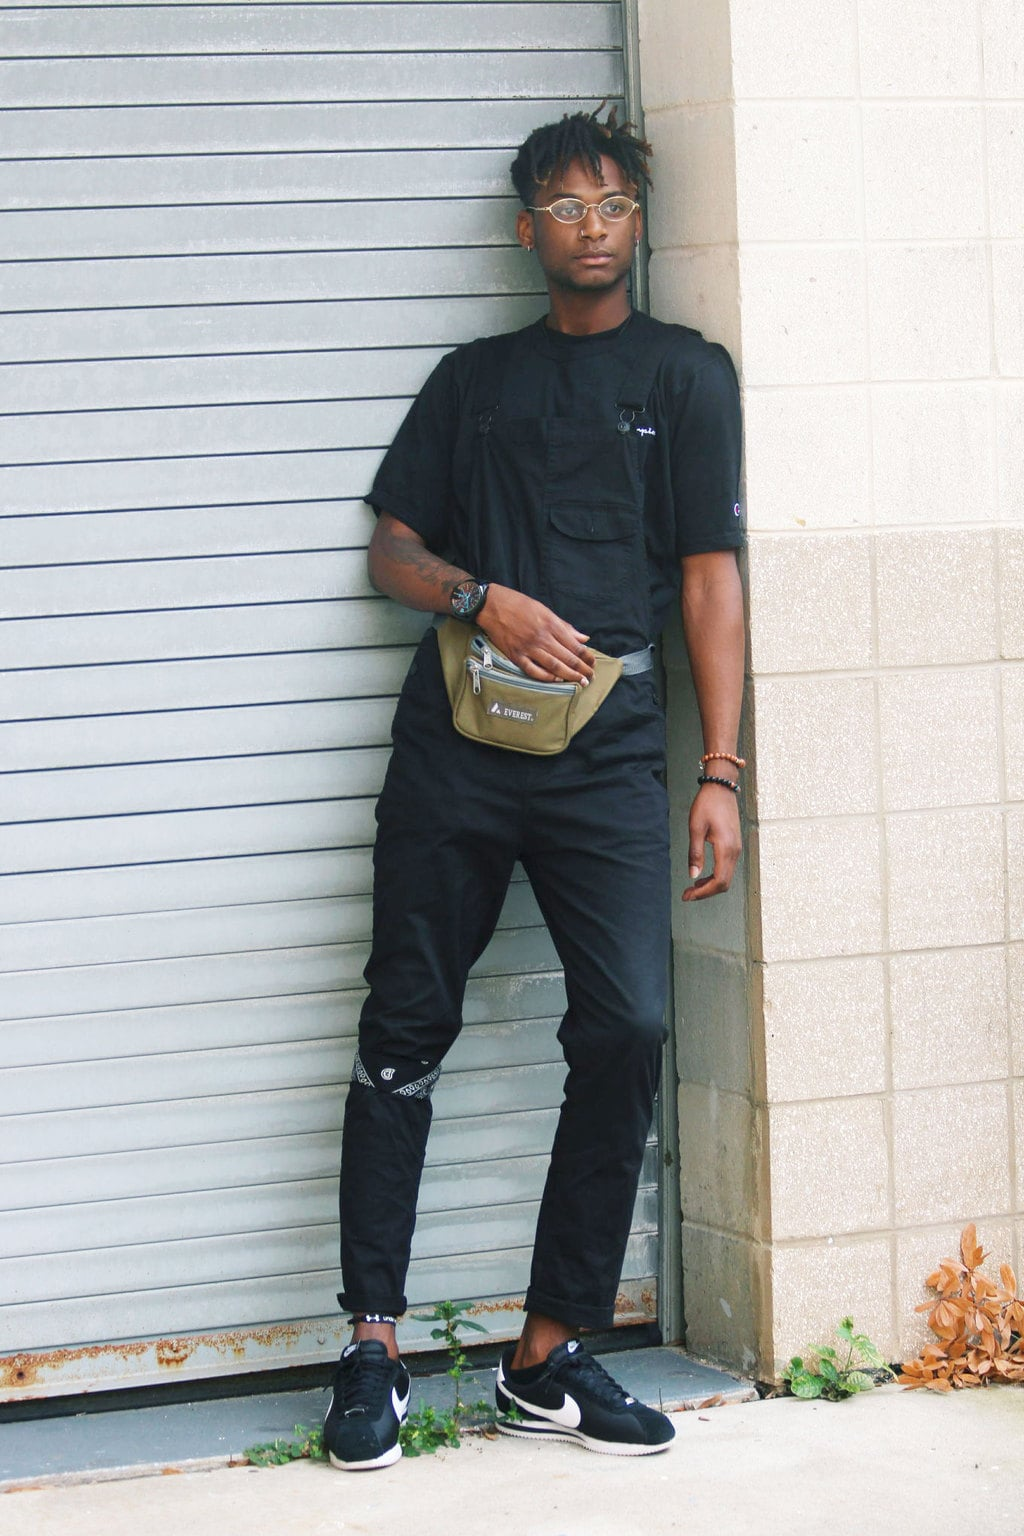 USF Fashion: Mens college fashion at University of South Florida - student Karon wears an all black outfit including overalls, a bandana, a black tee shirt, a fanny pack, glasses, and Nike sneakers